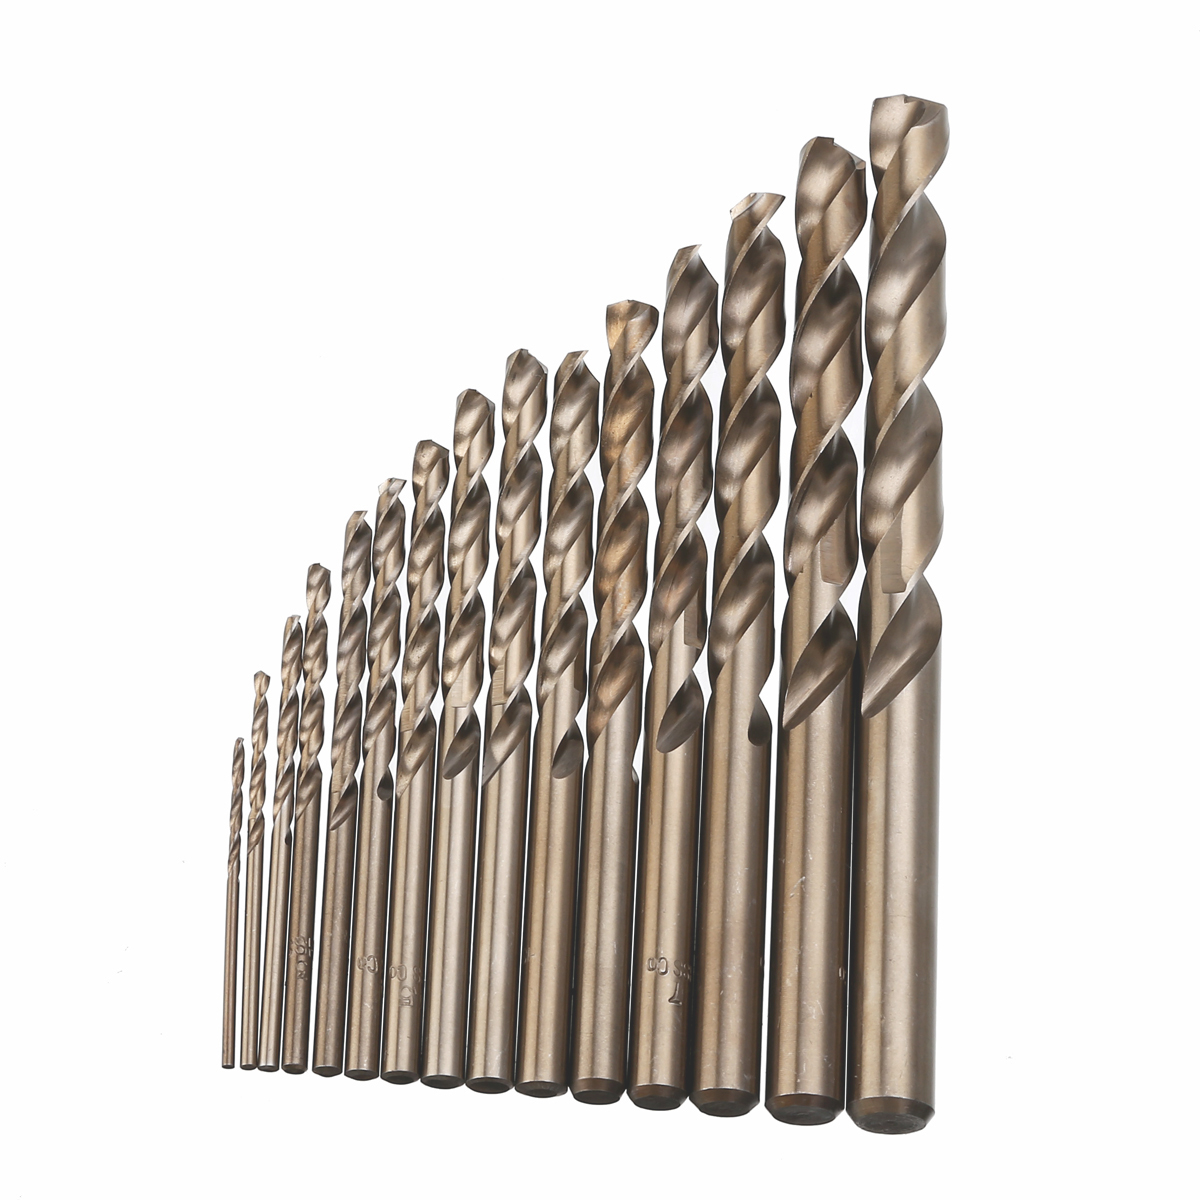 15pcs Cobalt Drill Bits For Metal Wood Working M35 HSS Steel Straight Shank 1.5-10mm Twist Drill Bit Power Tools Mayitr 4 9mm 5mm 5 1mm 5 2mm 250mm 300mm 350mm 400mm 500mm extra long metal al wood high speed steel hss straight shank twist drill bit